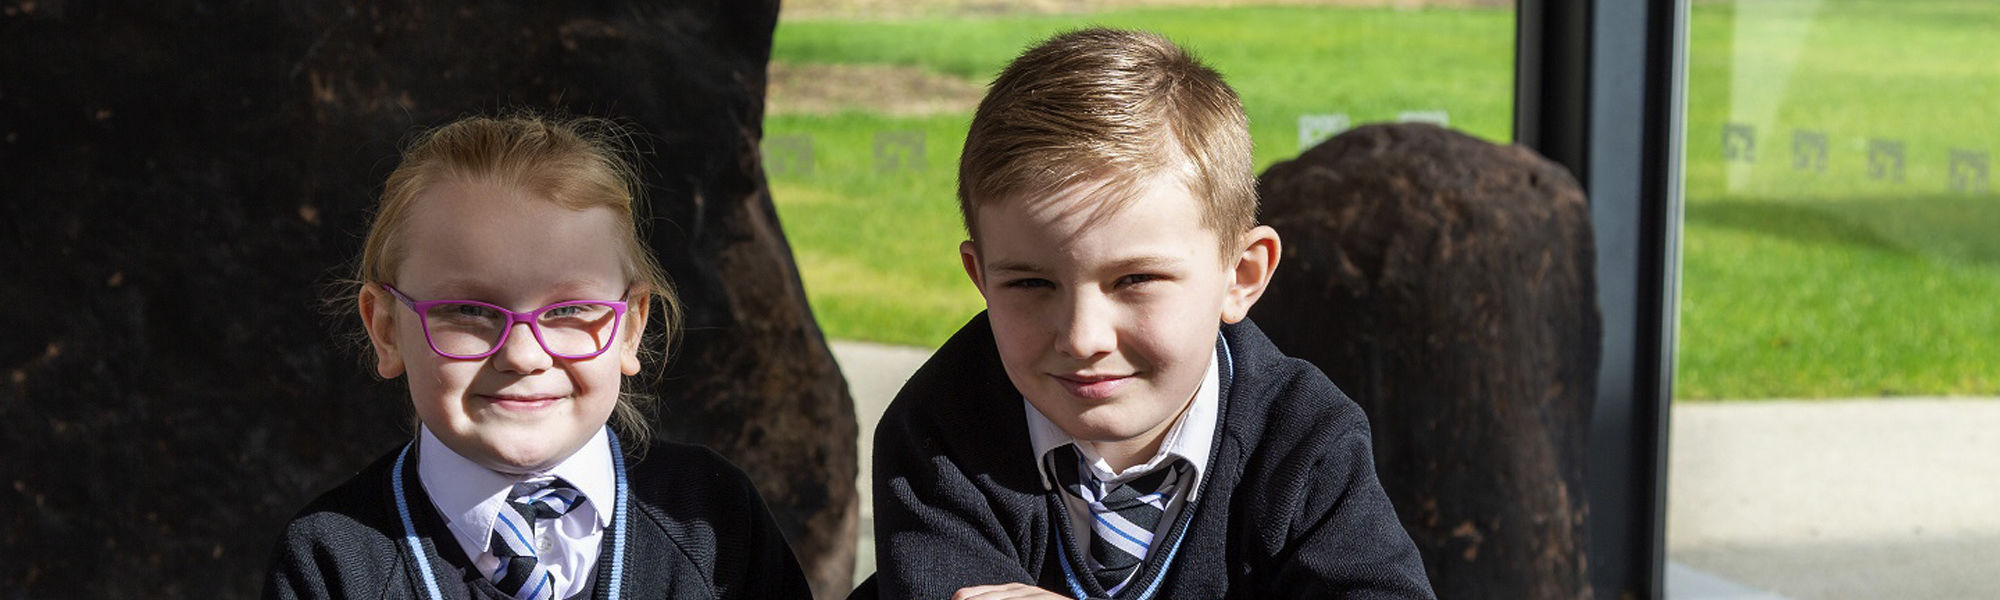 Arnot St Mary Church of England Primary School 4